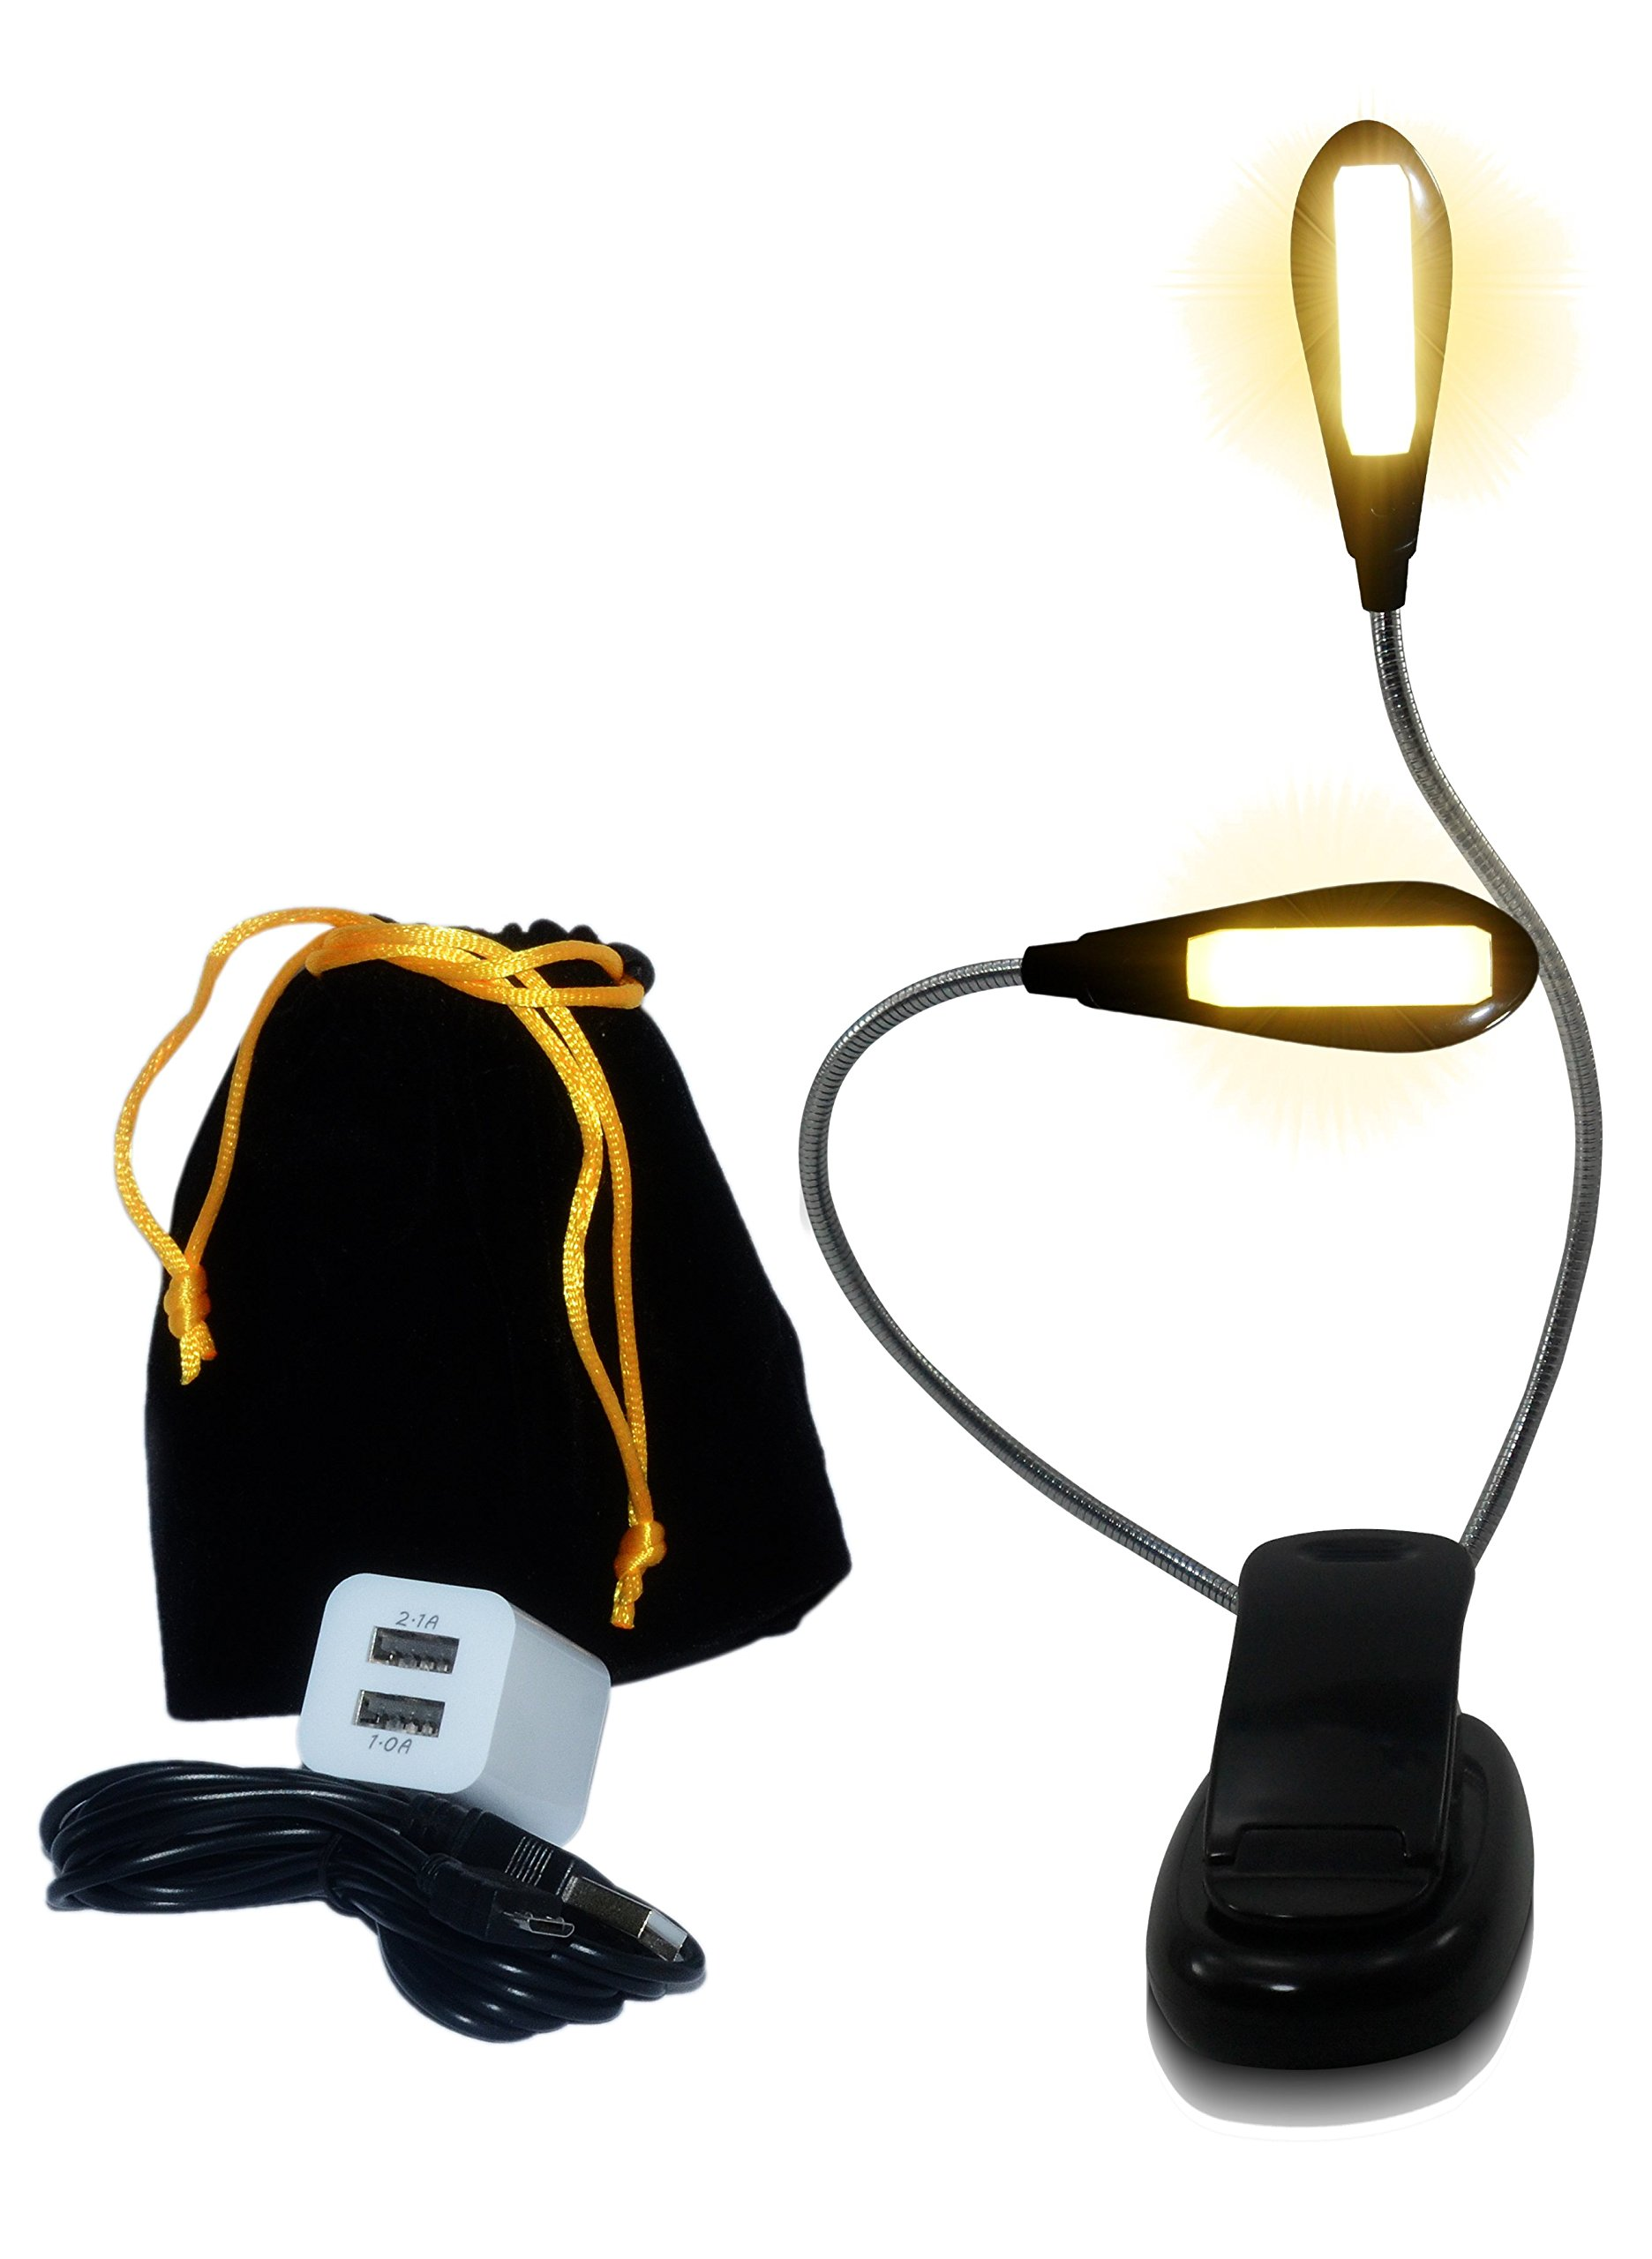 Eye Care Warm Book Light — 6 Brightness Levels, LED Clip-On Lamp for Reading in Bed, Dual Charger, 78in USB Cable & Travel Bag — Eco Friendly Rechargeable & Replaceable Battery - Best Gift for Her